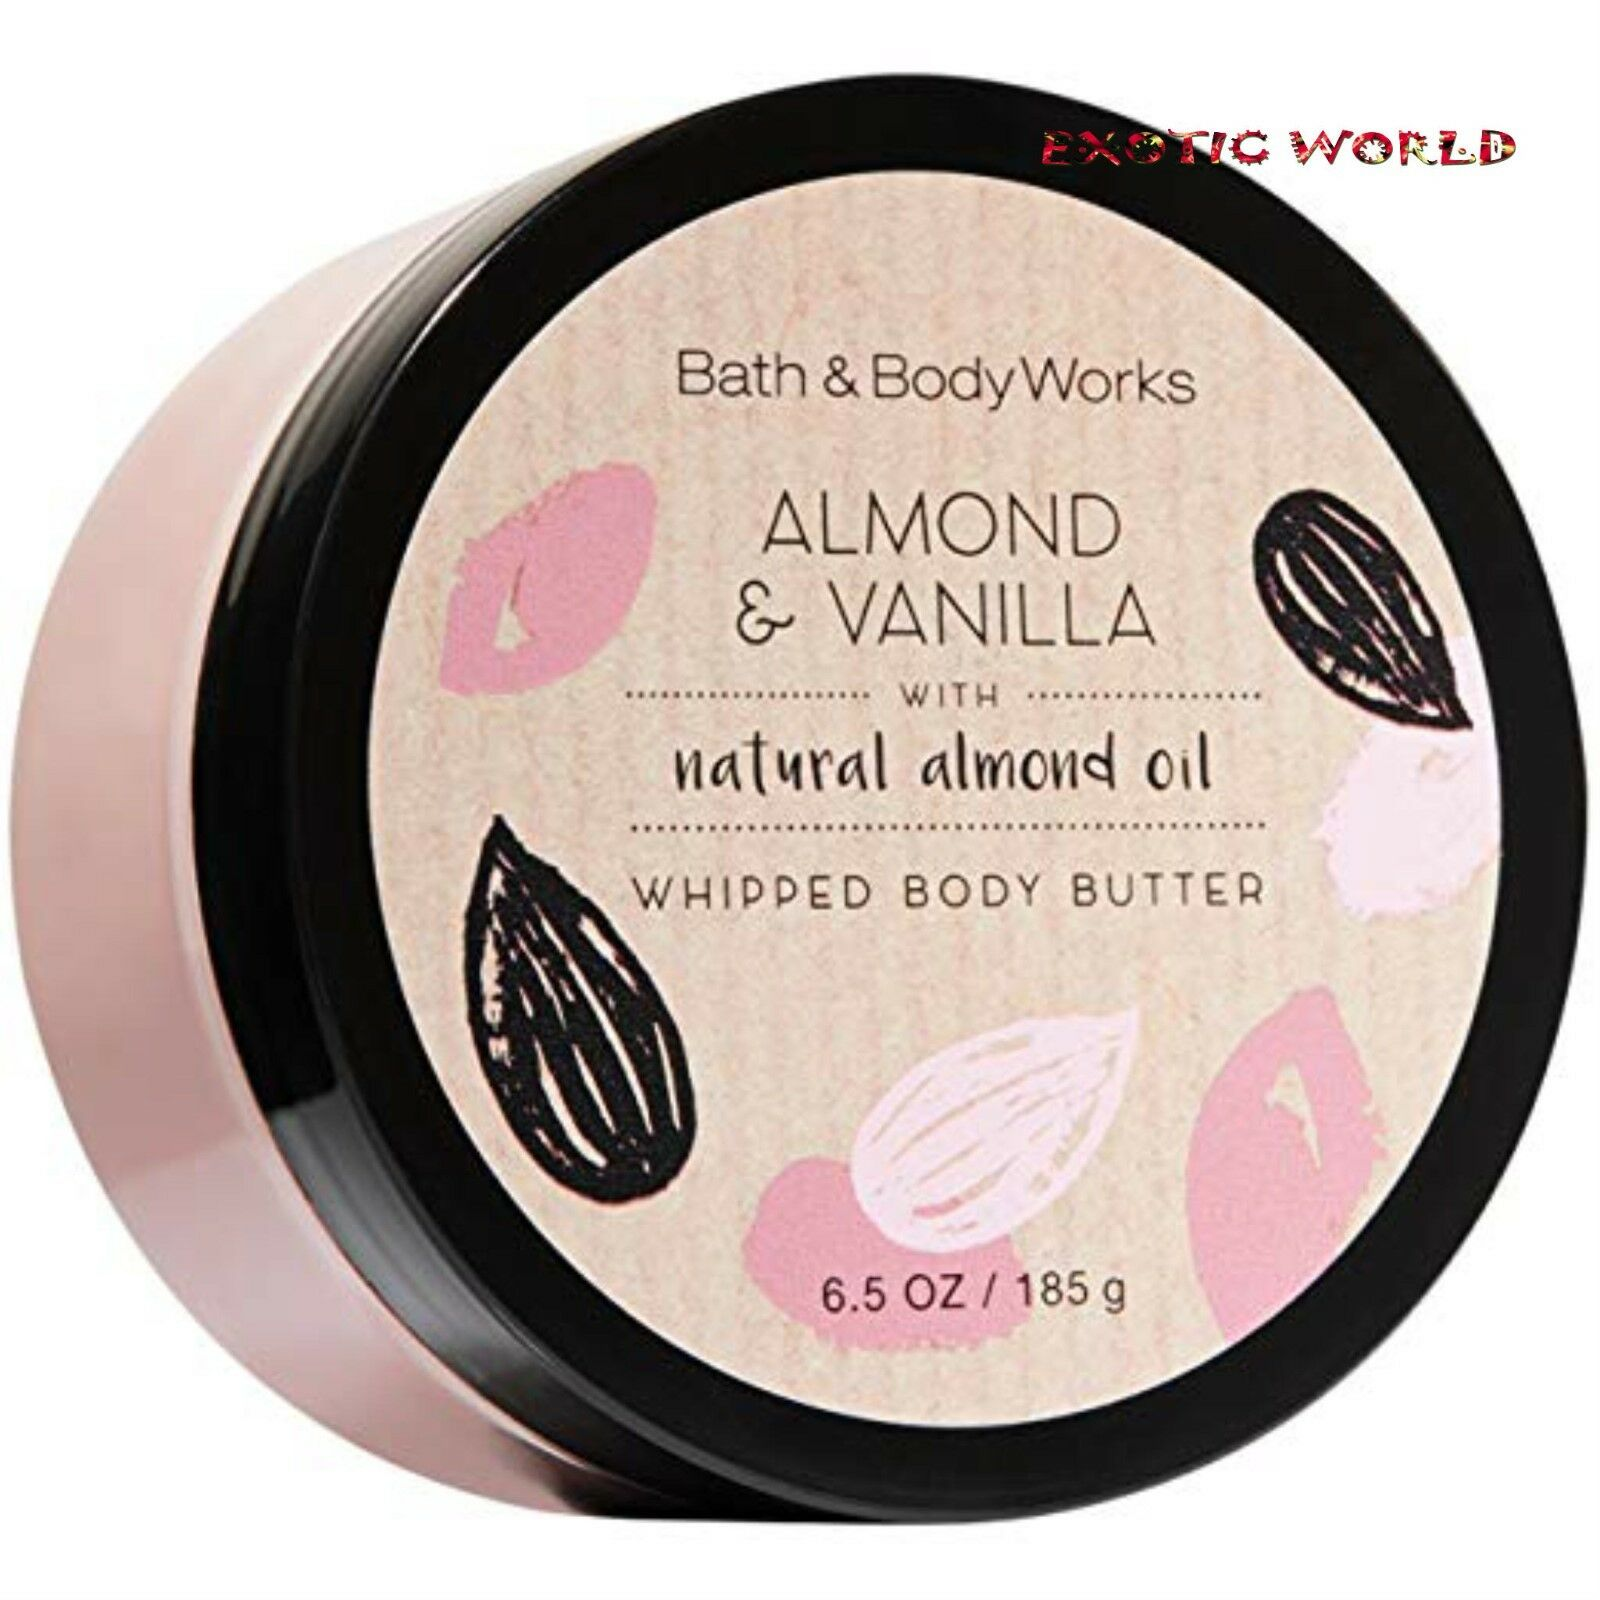 BATH AND BODY WORKS ALMOND & VANILLA BODY BUTTER  6.5 OZ